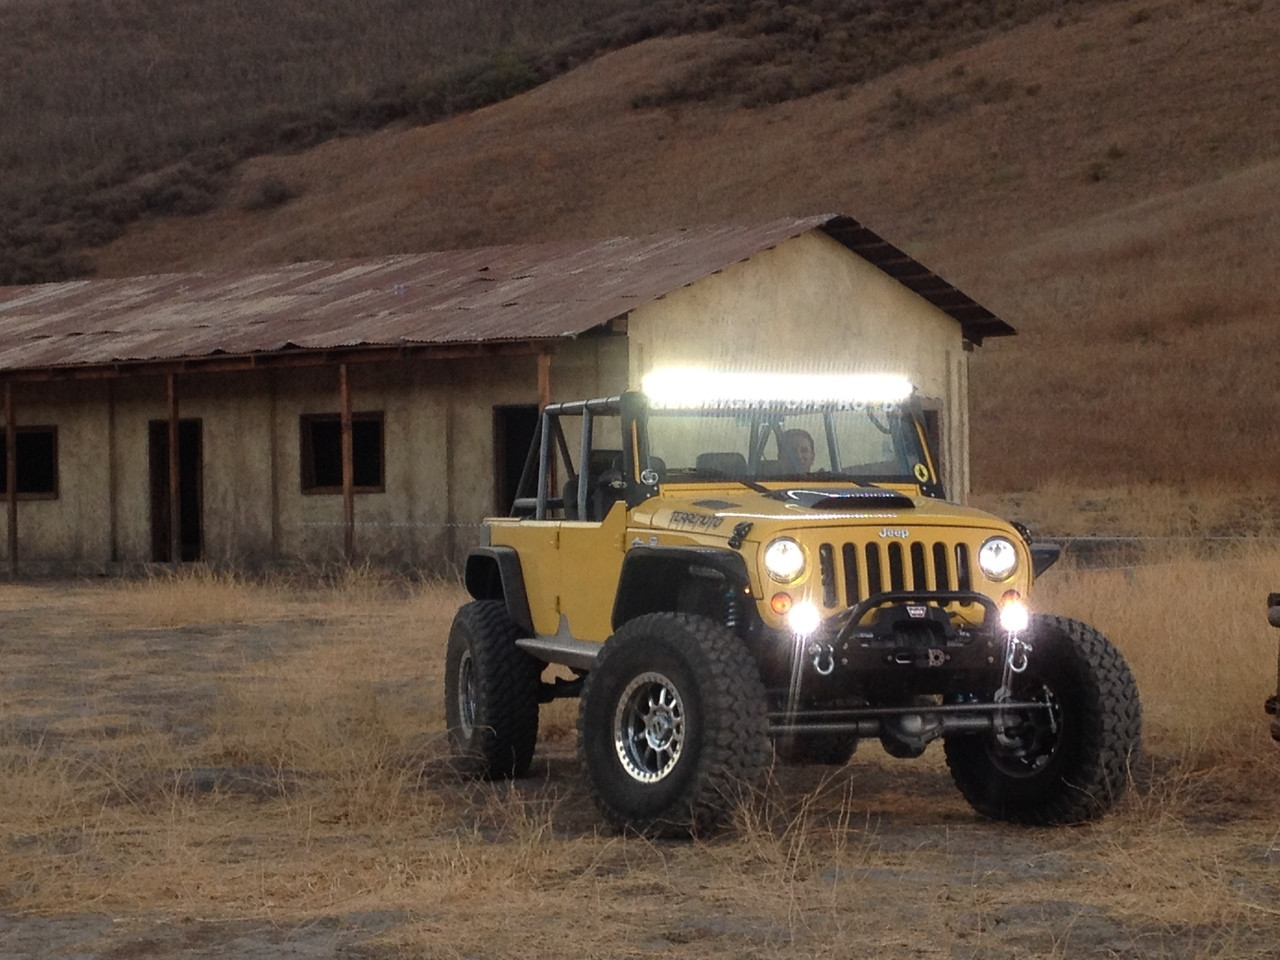 Excellent light pattern from the VisionX LED light bar